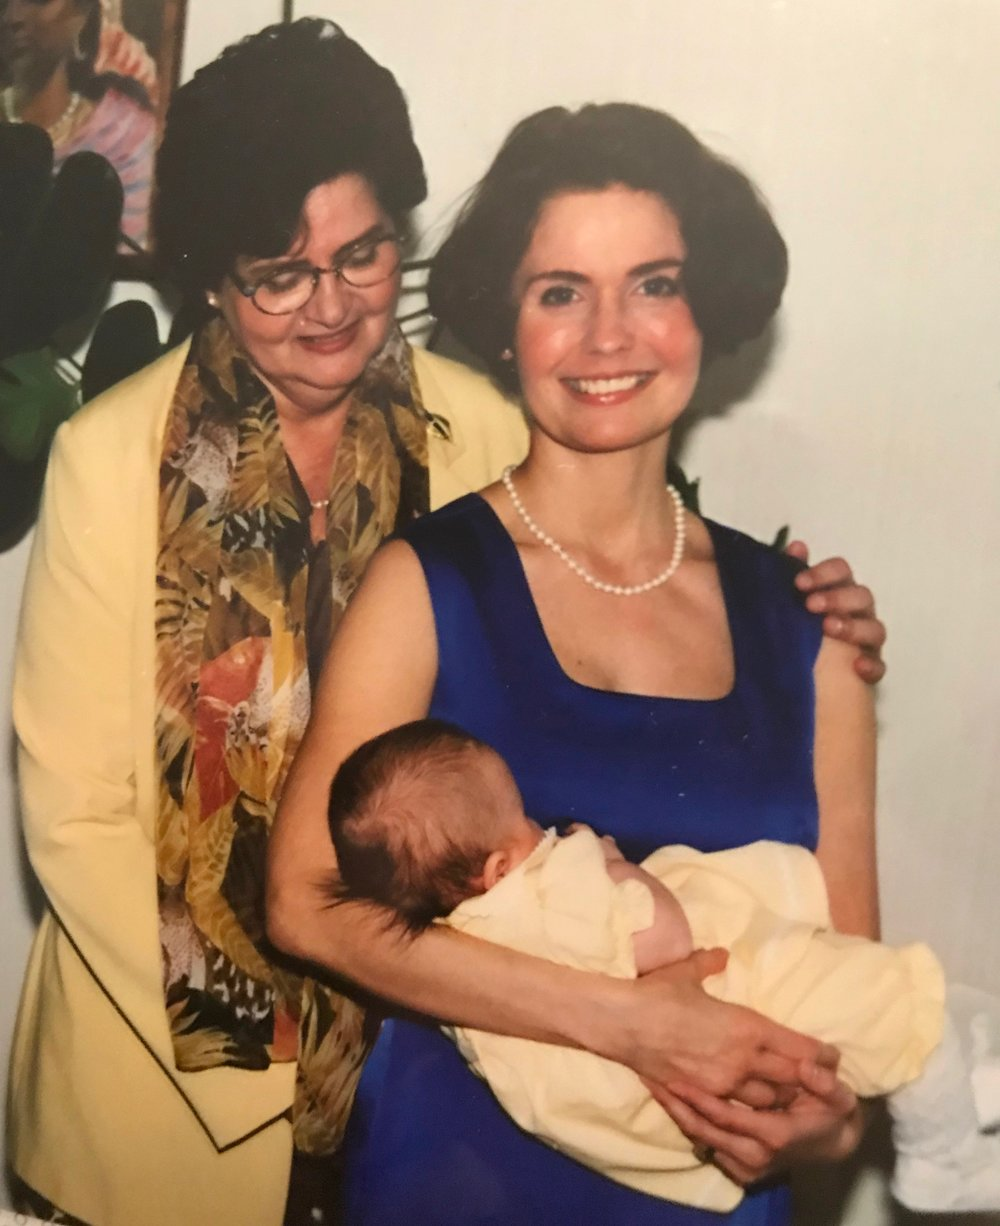 Erika, my mum and me, just before my sister's wedding and christening of my sister's eldest daughter (they had both ceremonies at the same time).